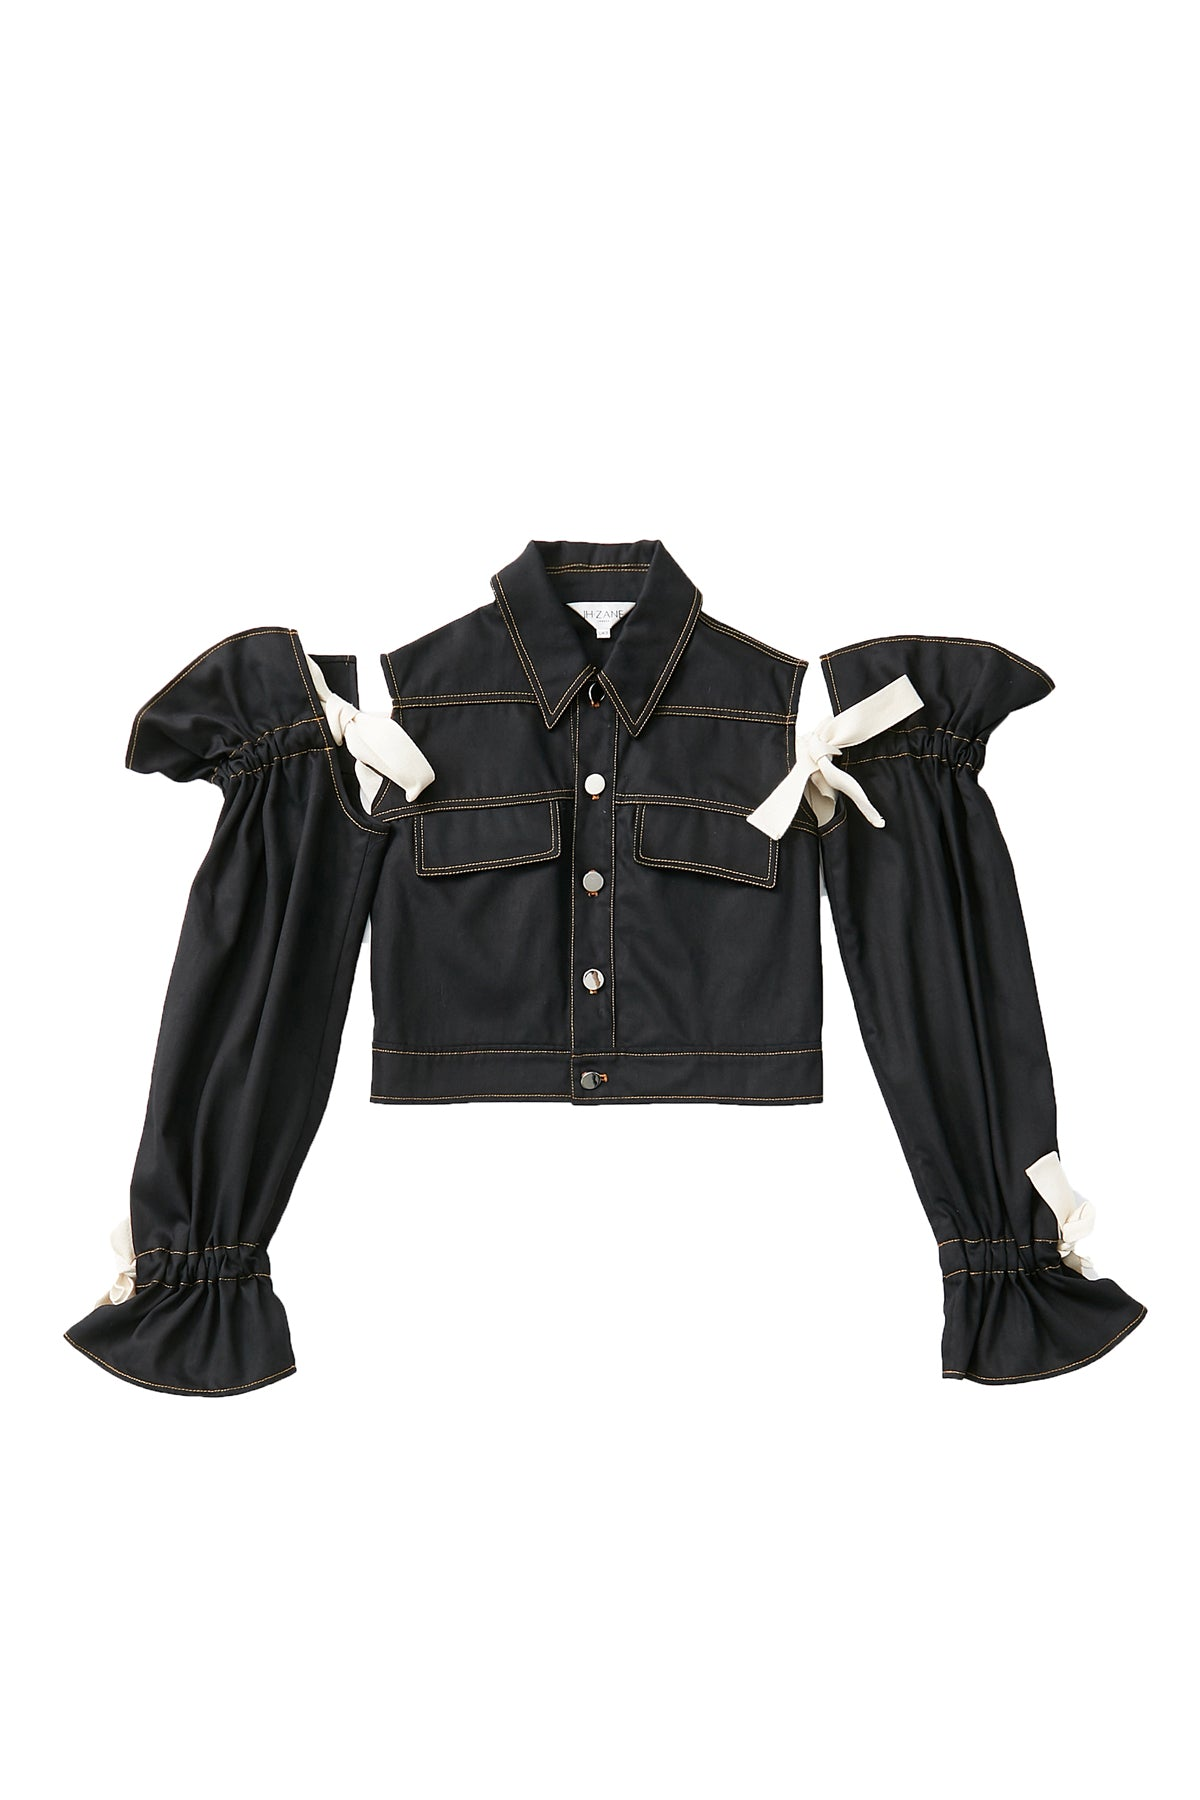 Blossom Sleeve Demin Jacket in Black